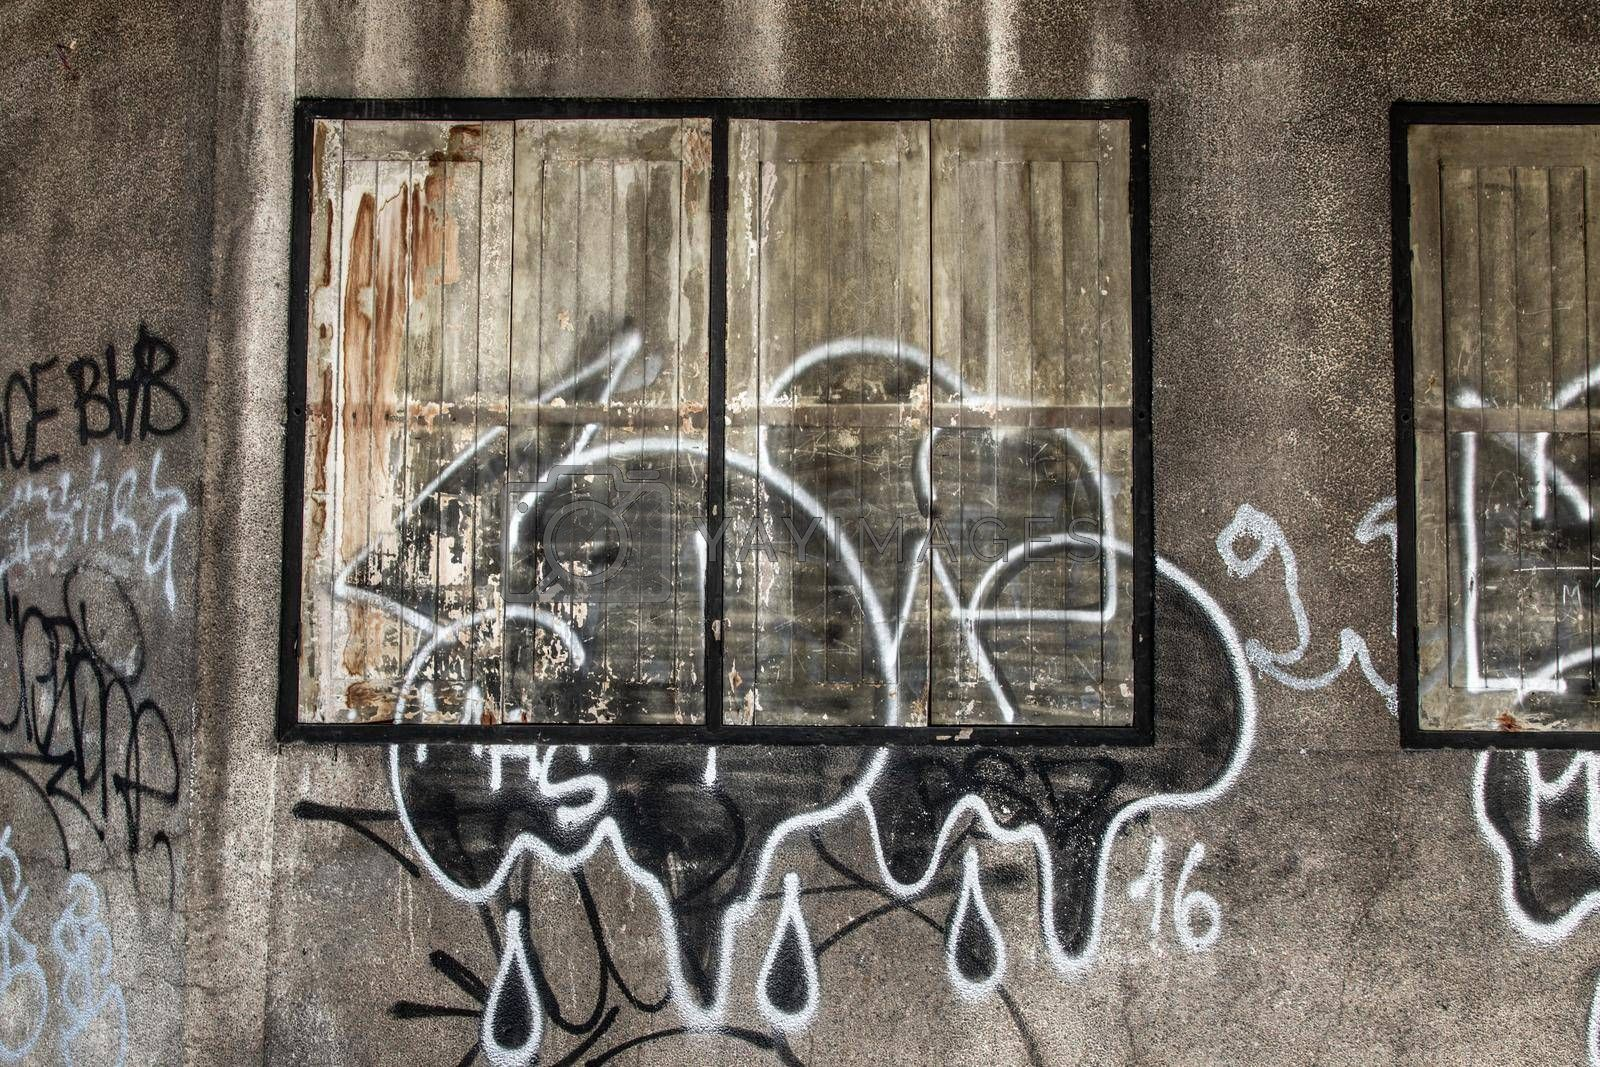 Bangkok, Thailand - Dec 12, 2019 : Wood vintage window on the old wall and graffiti painting.